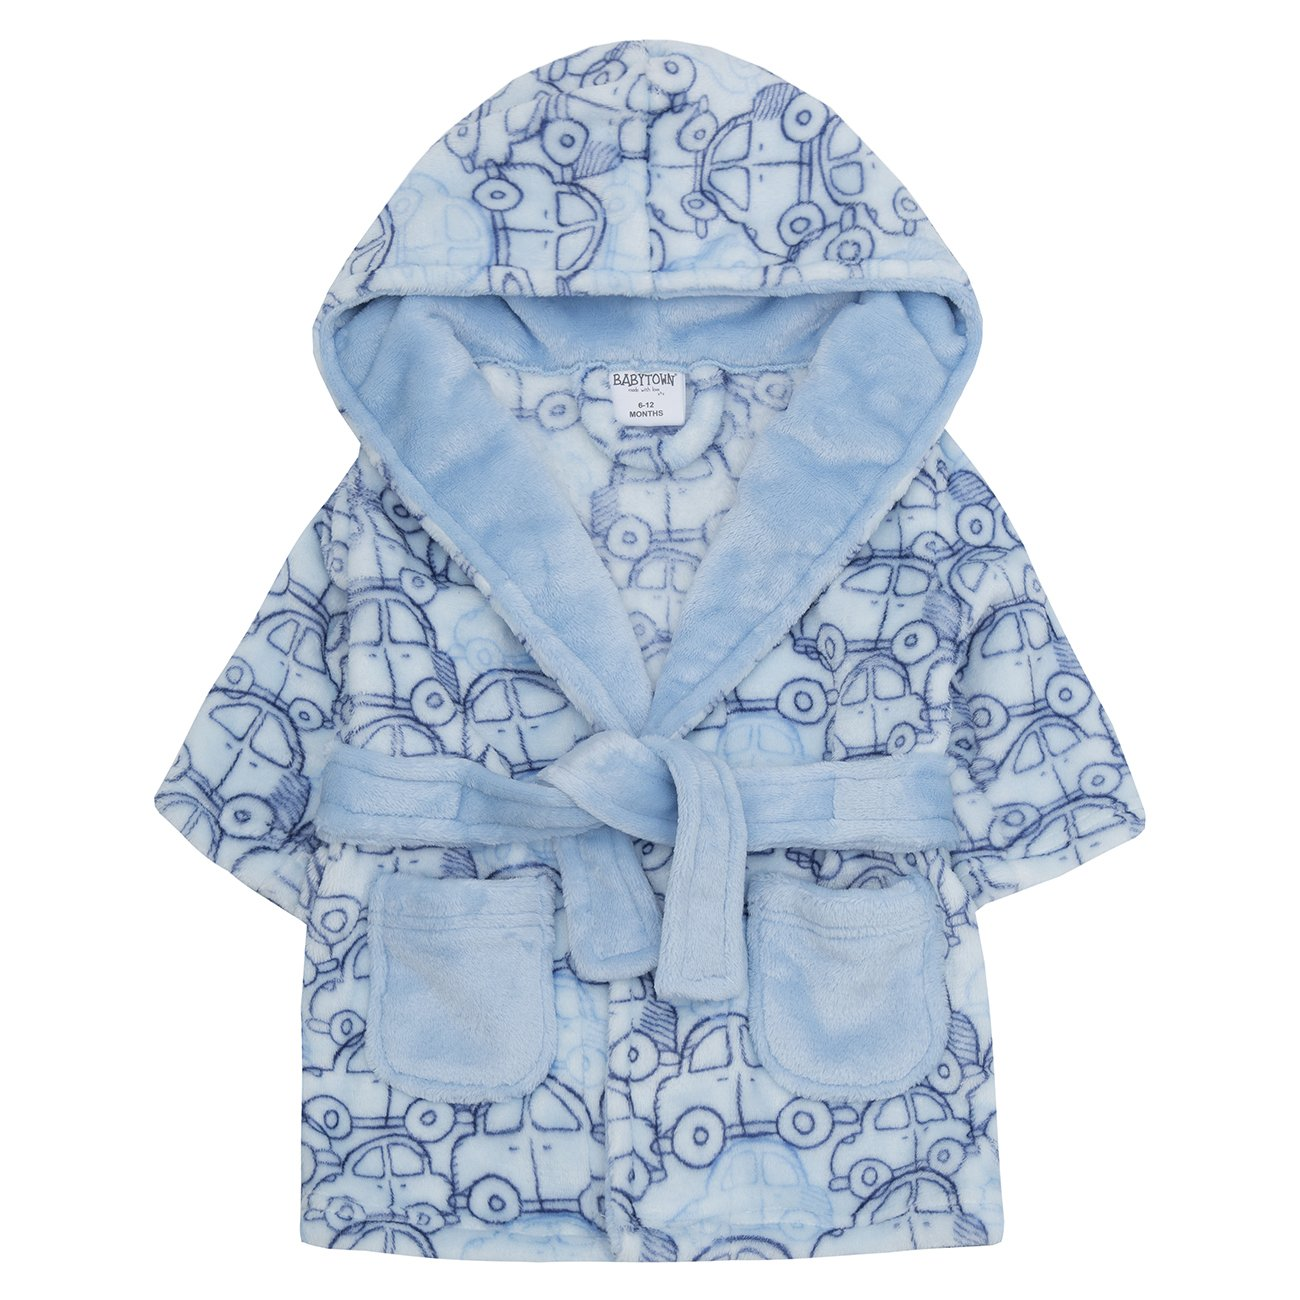 BABY TOWN Newborn Baby Boys Dressing Gown - Blue Car Flannel Fleece Hooded Bathrobe Babytown